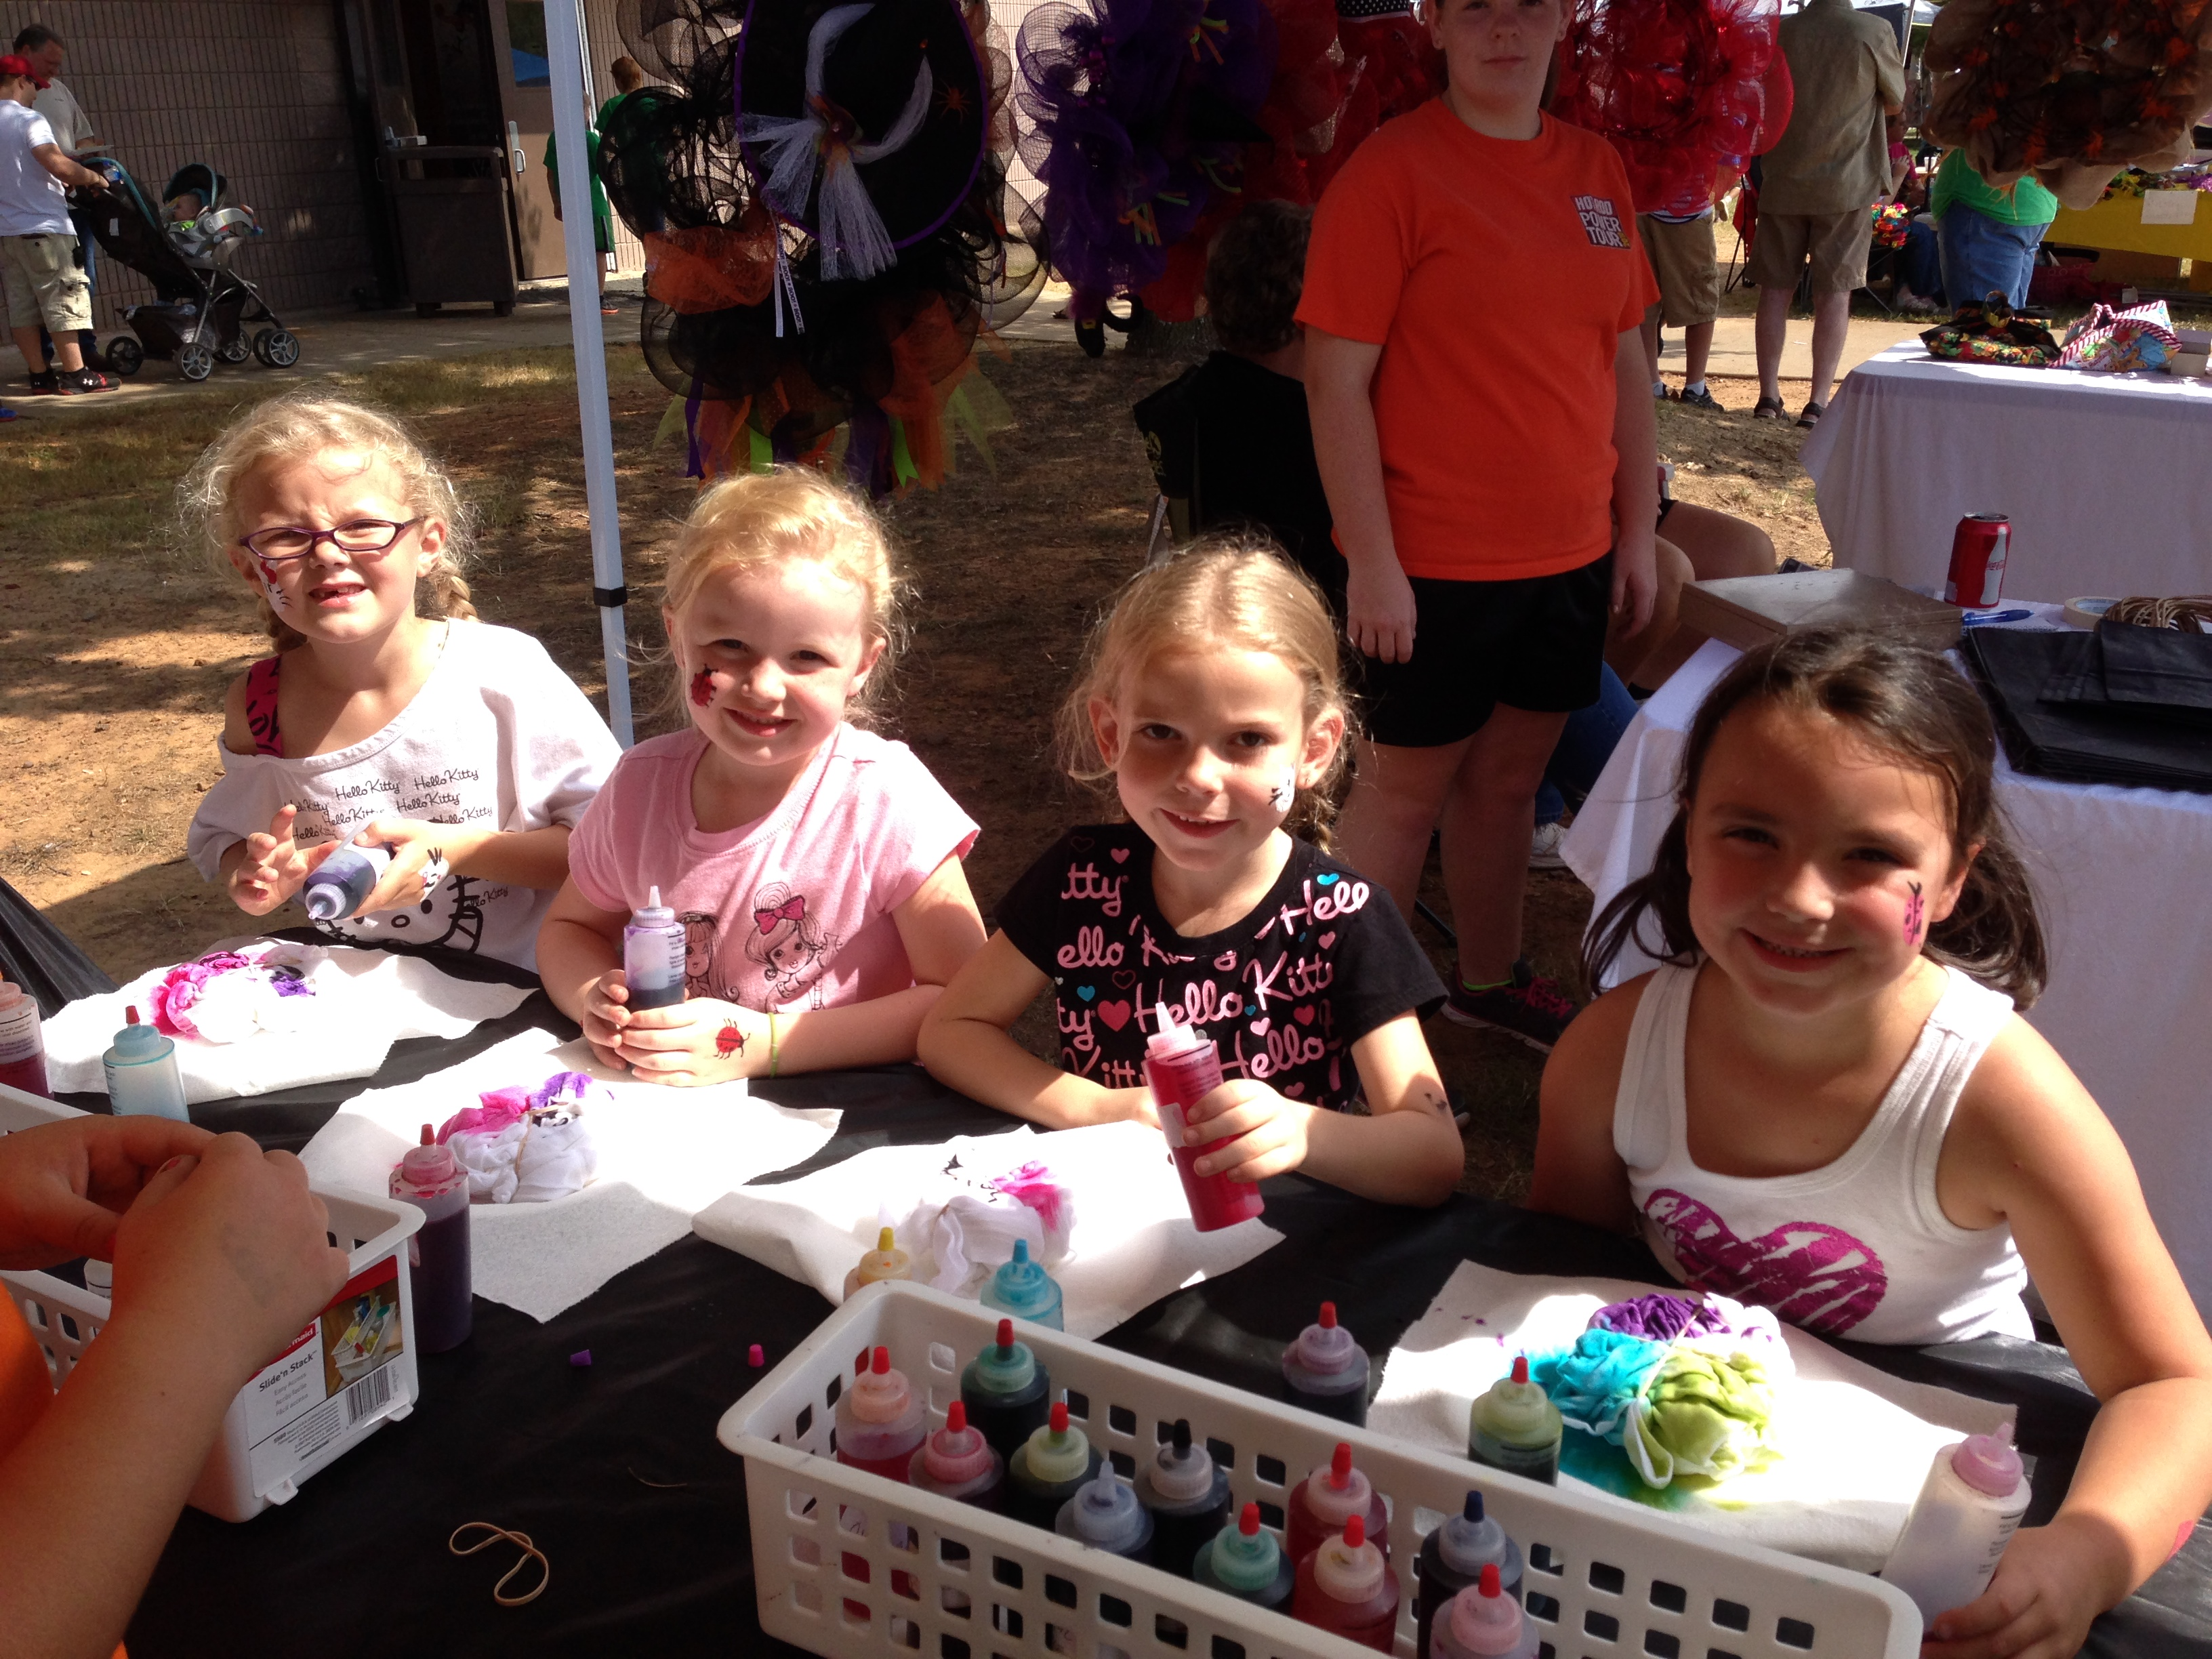 Four little girls who came to Kamrie's booth to tye-dye shirts to help raise money for suitcases on wheels for foster kids